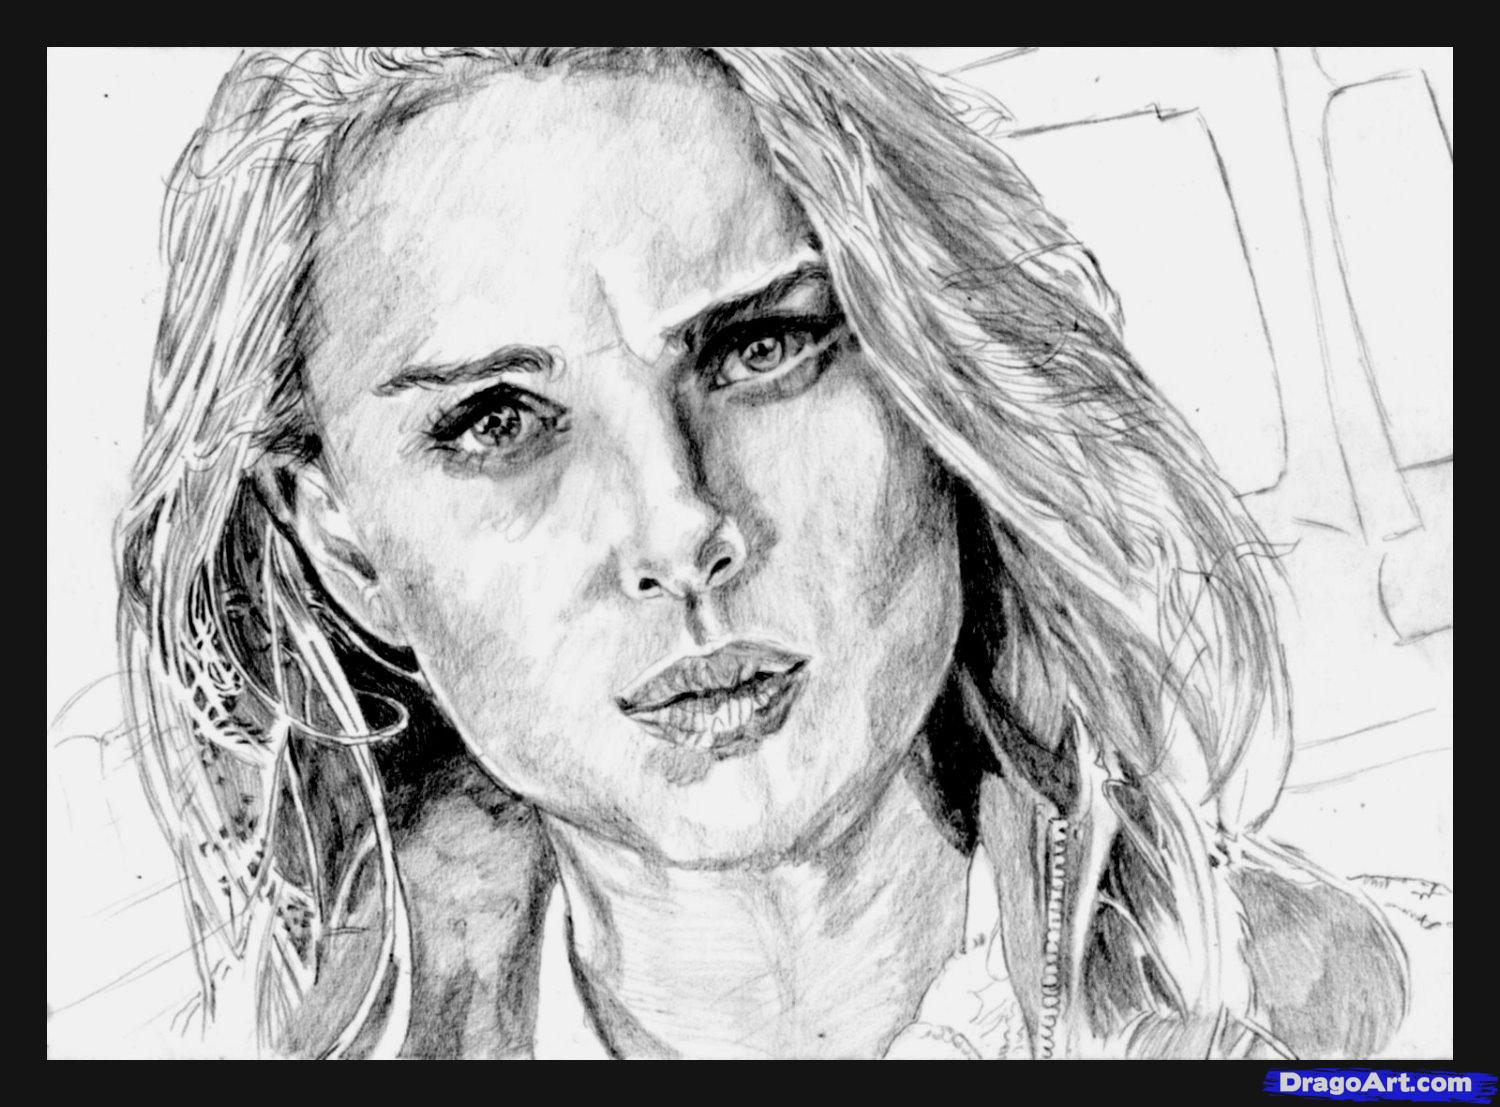 How to draw Natali Portman's portrait with a pencil step by step